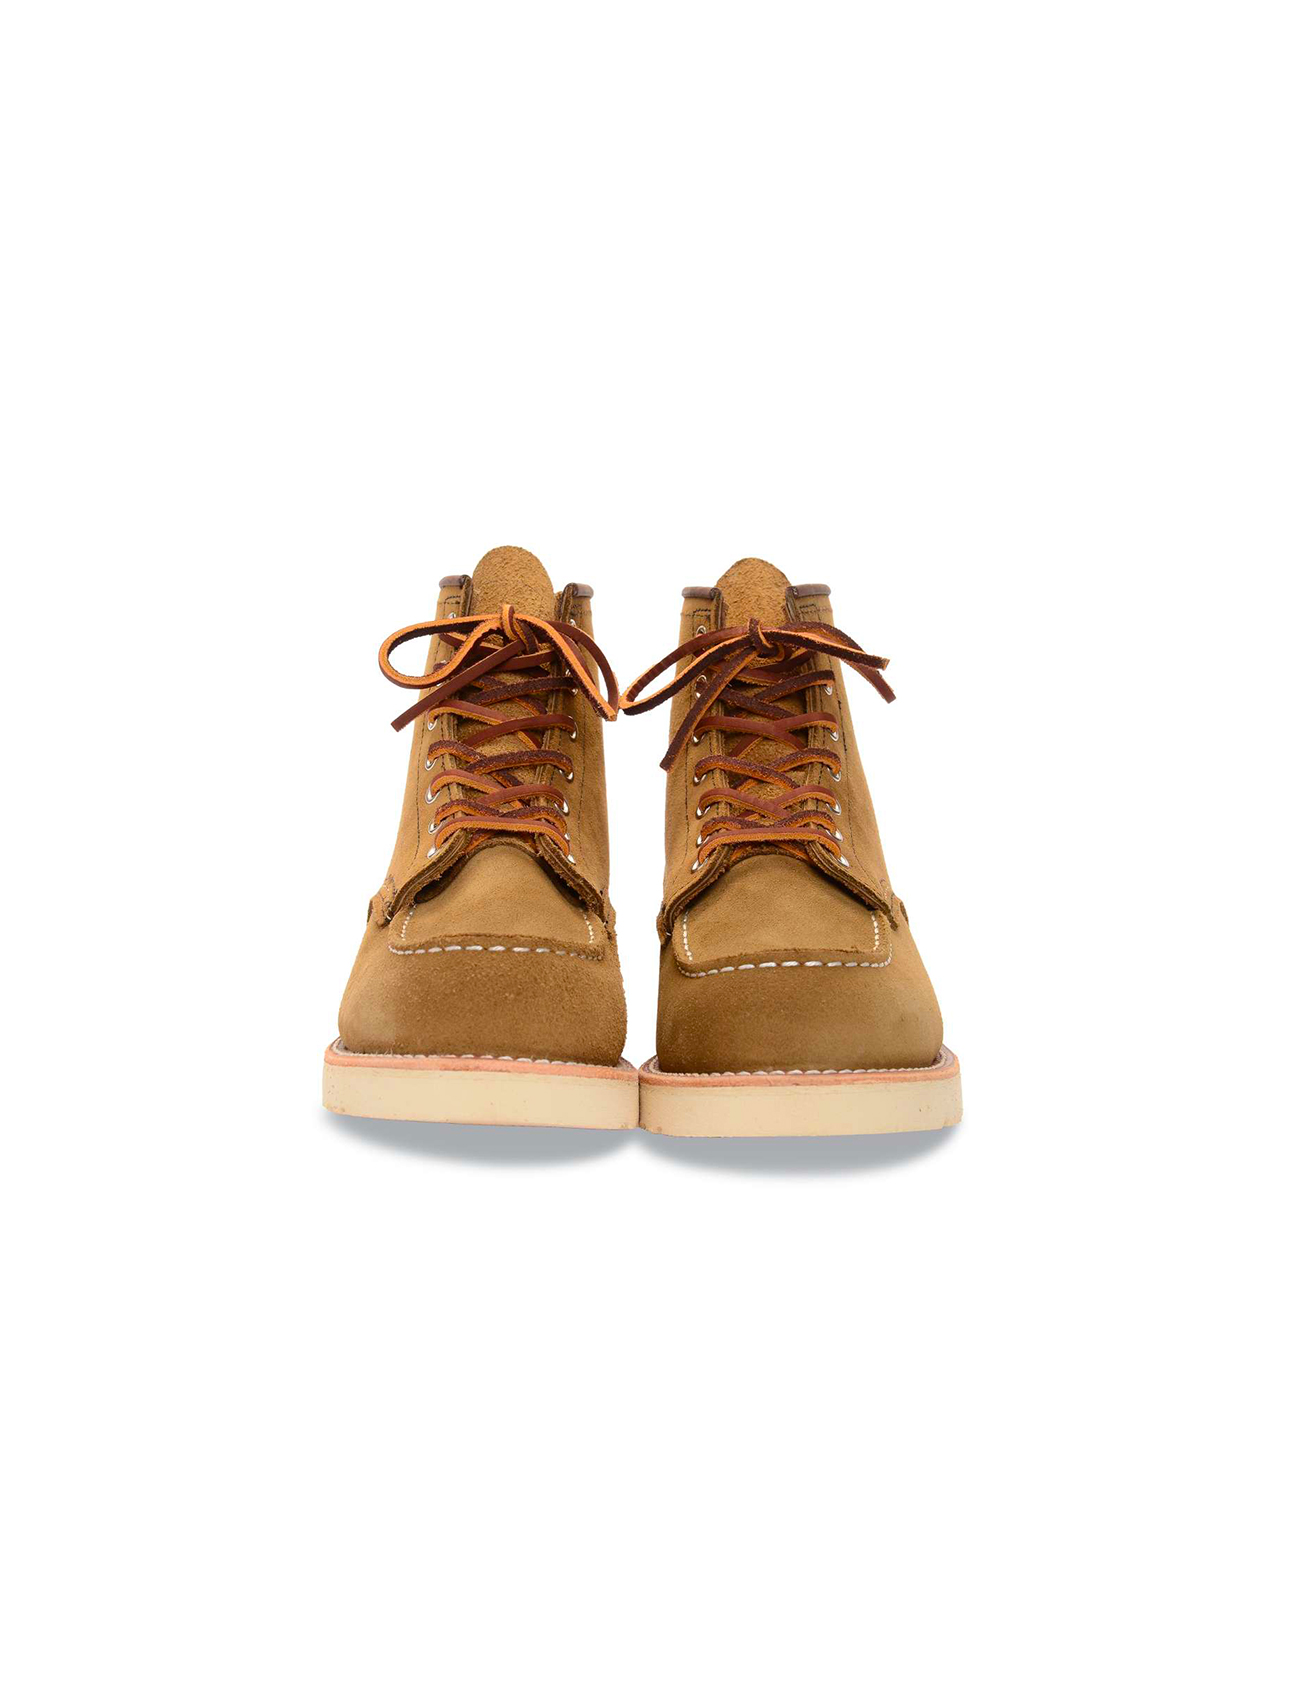 Red Wing 8881 Classic Moc Toe Olive | Wooden Store